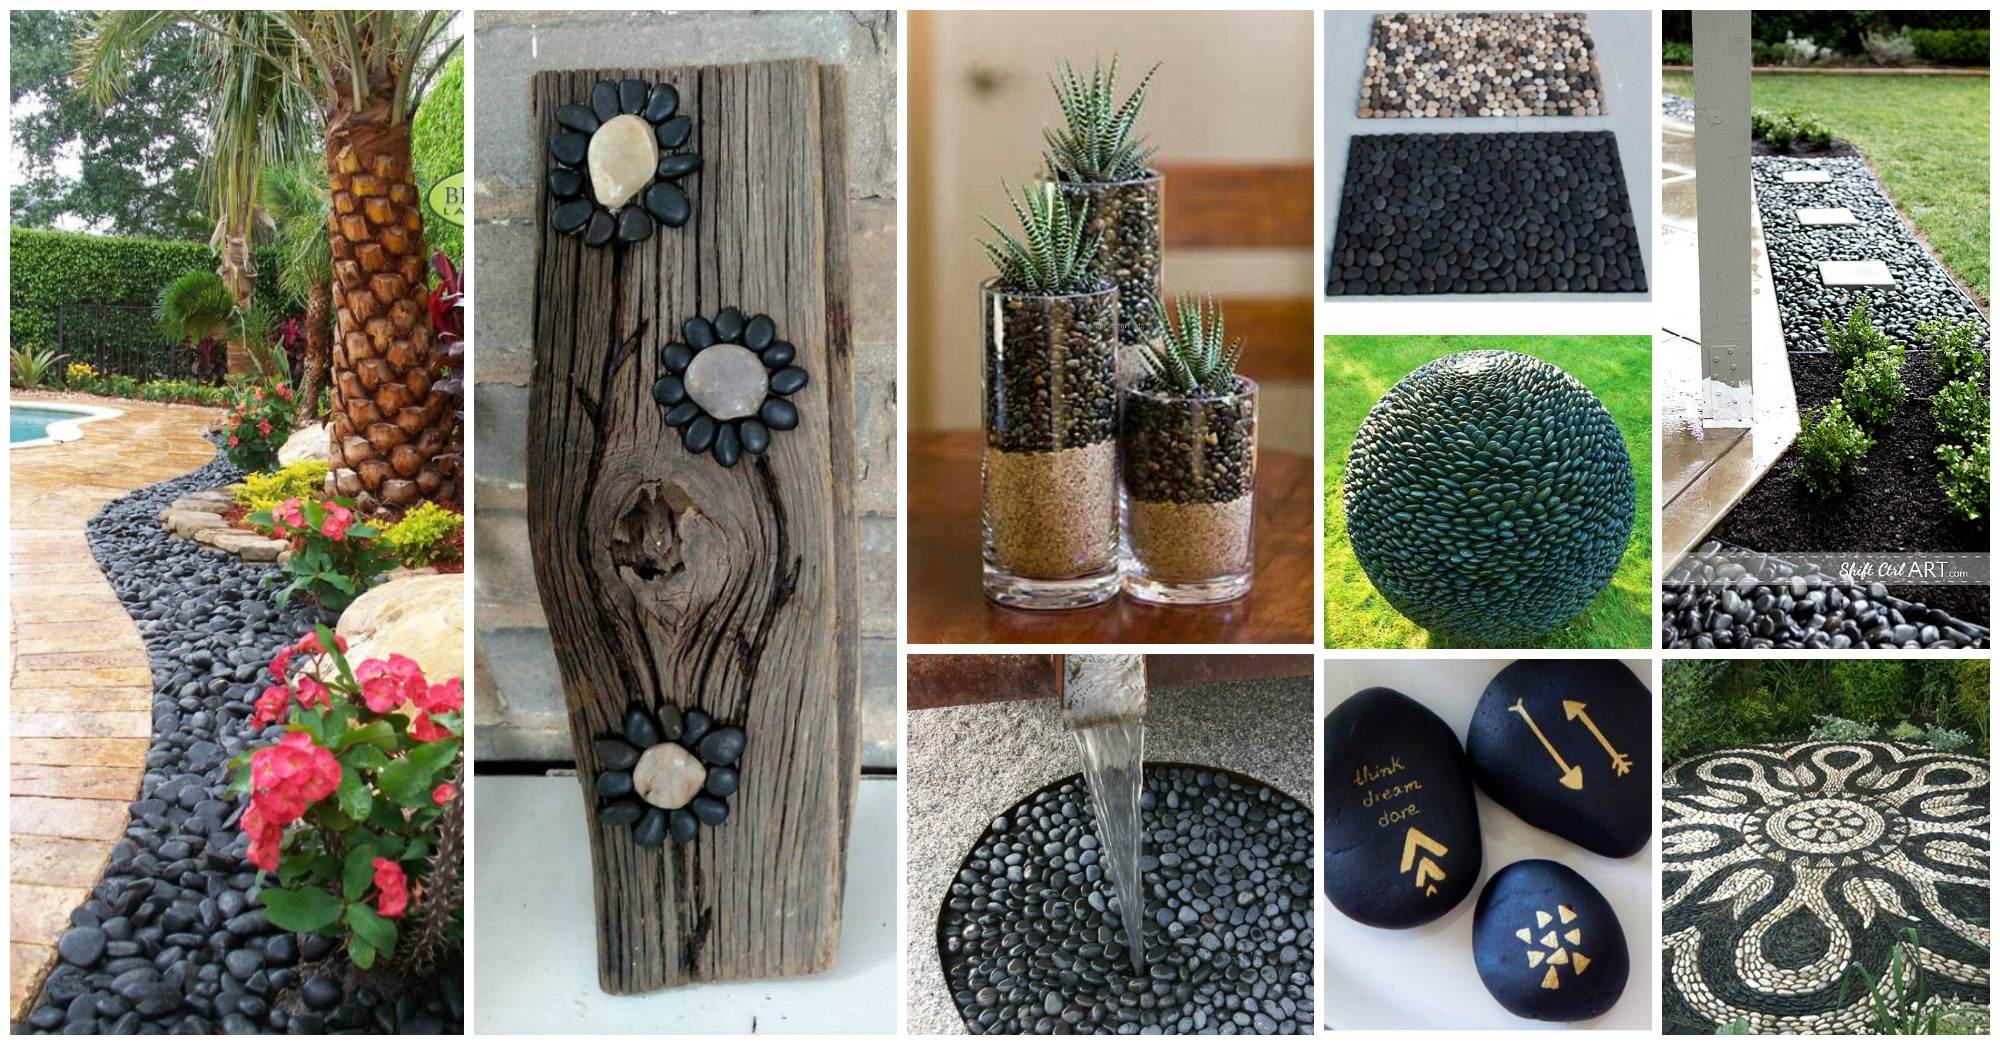 15 Superb Black Pebbles Decor Ideas